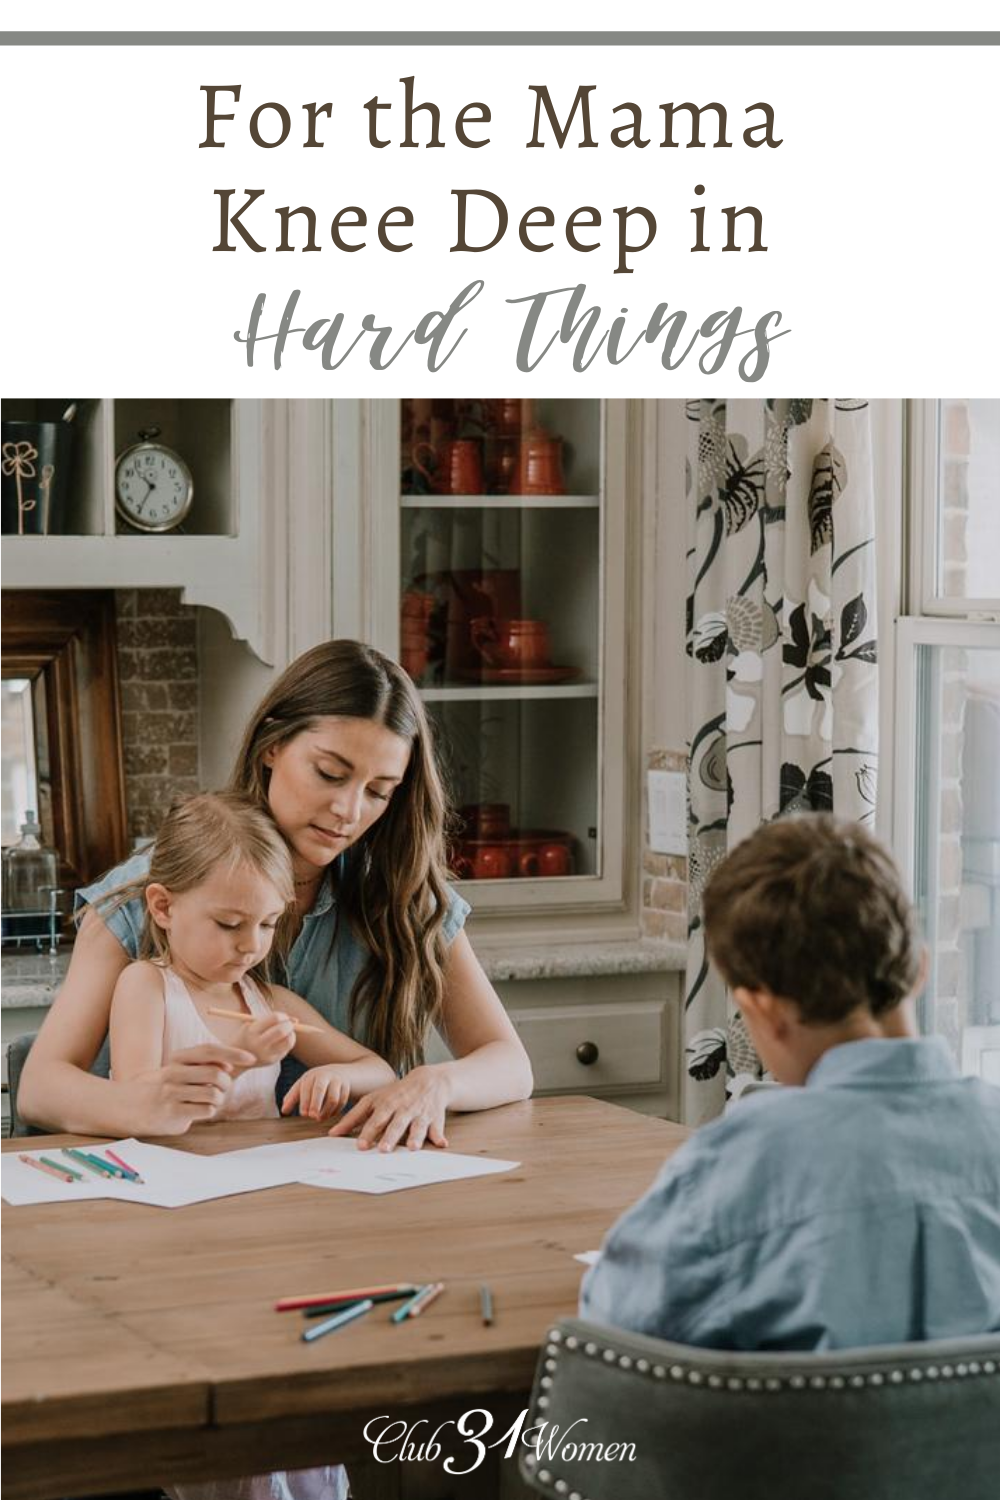 Being a brave mom was never meant to be easy. But have we traded courageous mothering for comfortable culture? Let's choose the hard things... via @Club31Women